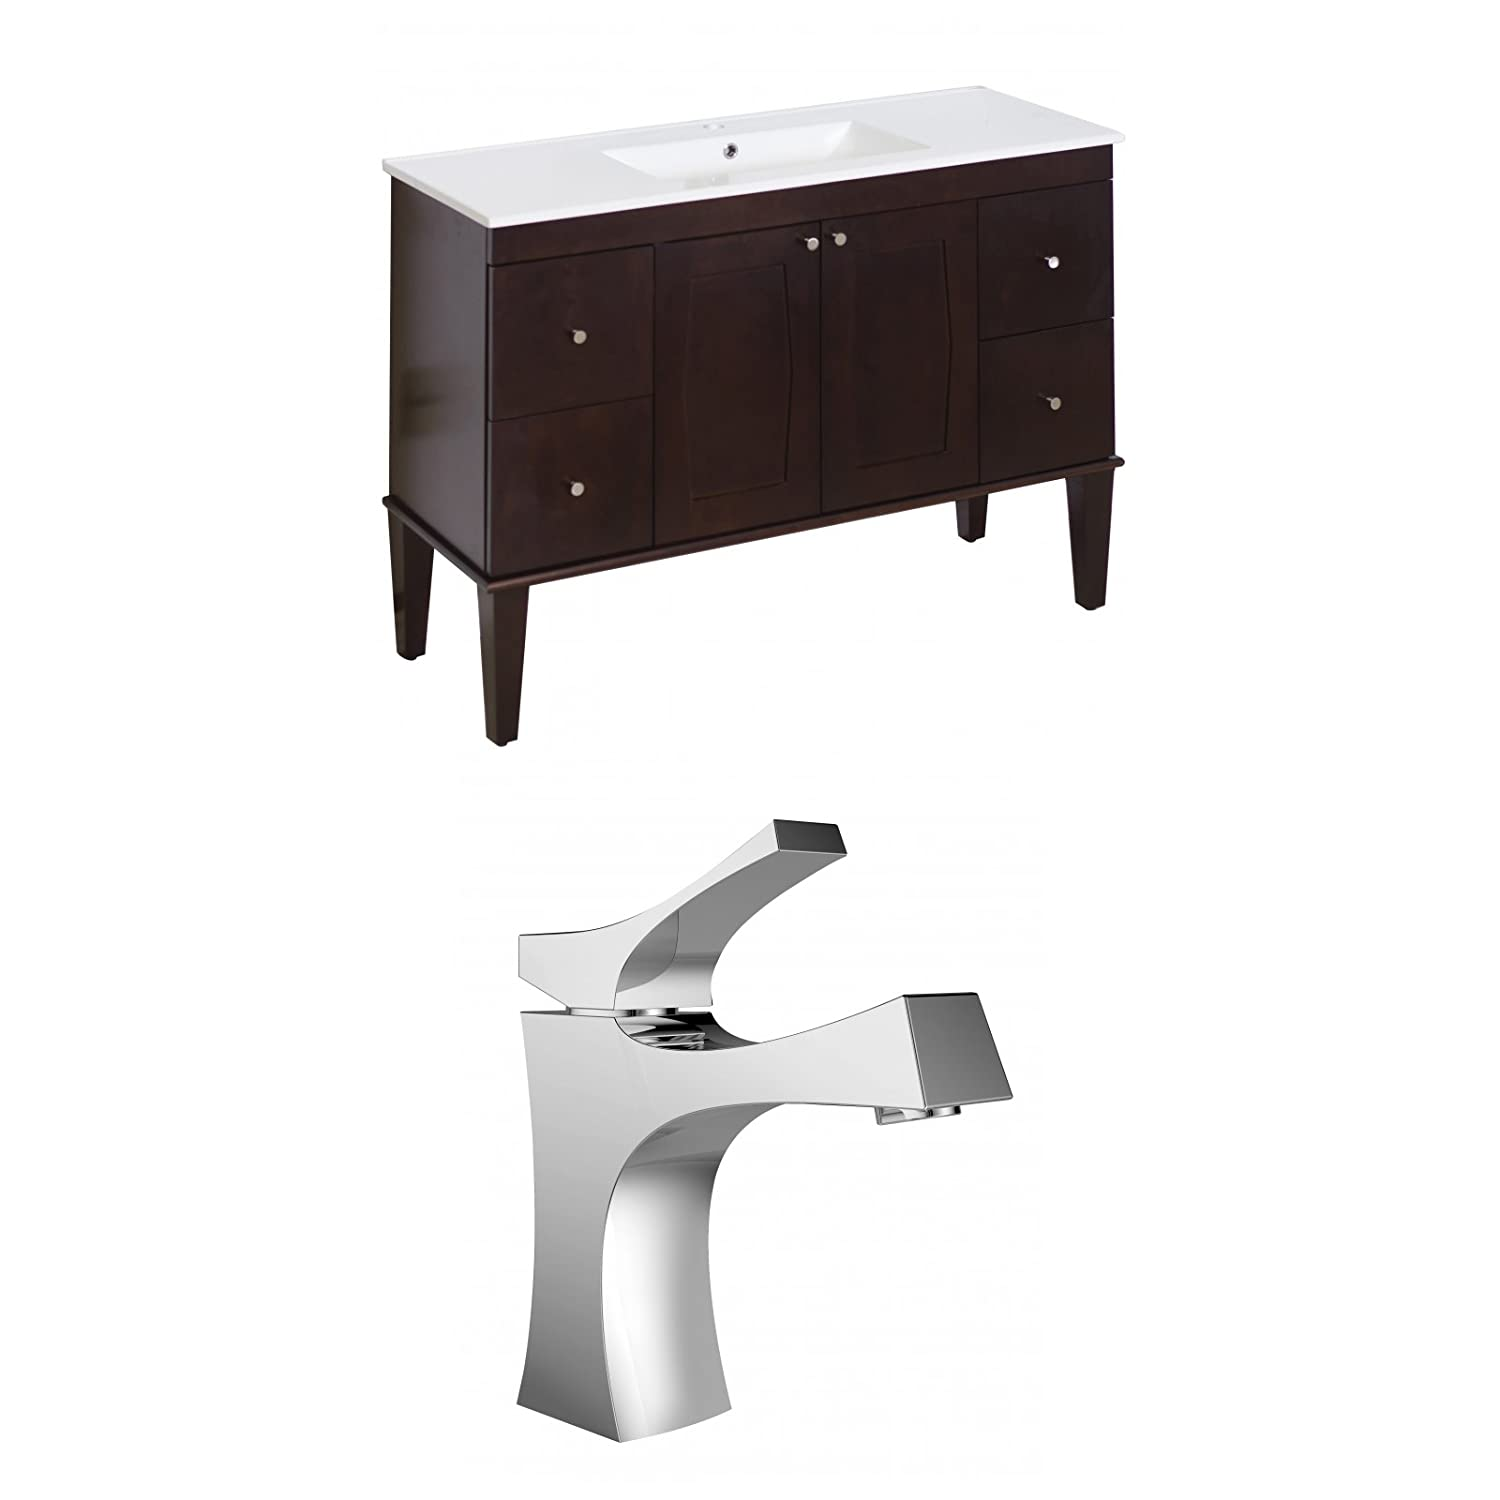 "chic Jade Bath JB-8189 48"" W x 18"" D Birch Wood-Veneer Vanity Set with Single Hole CUPC Faucet, Antique Walnut"